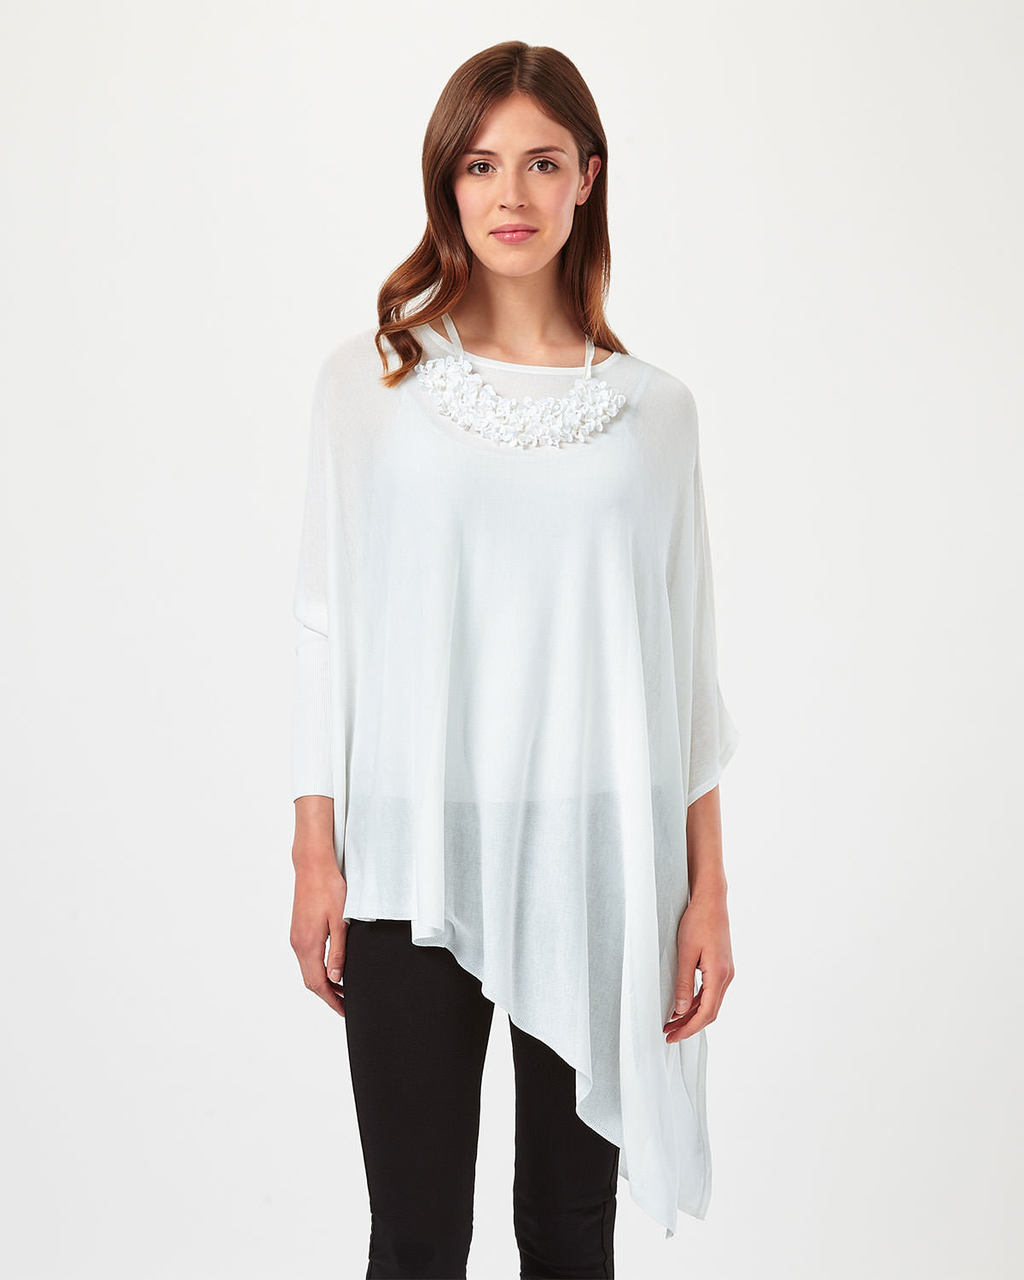 Nieve Necklace Knit - neckline: round neck; pattern: plain; length: below the bottom; predominant colour: white; occasions: casual; style: top; fibres: polyester/polyamide - 100%; fit: loose; sleeve length: 3/4 length; sleeve style: standard; pattern type: fabric; texture group: jersey - stretchy/drapey; season: s/s 2016; wardrobe: basic